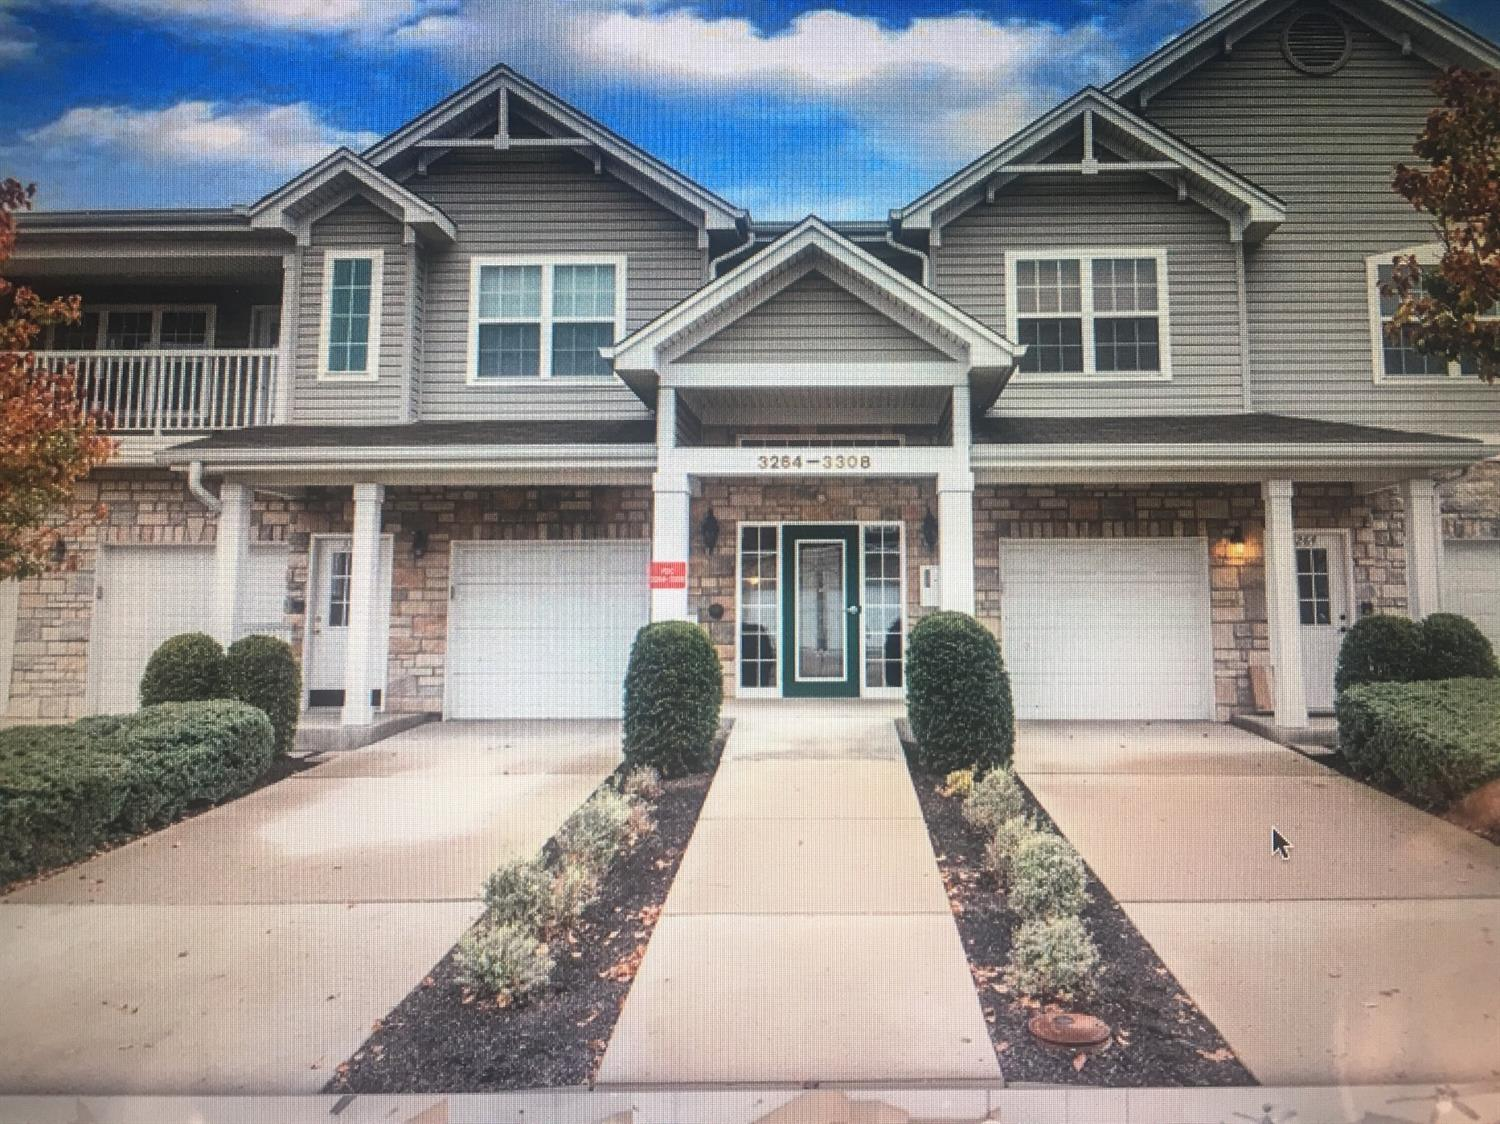 Property for sale at 3292 Grand Falls Boulevard, Deerfield Twp.,  OH 45039